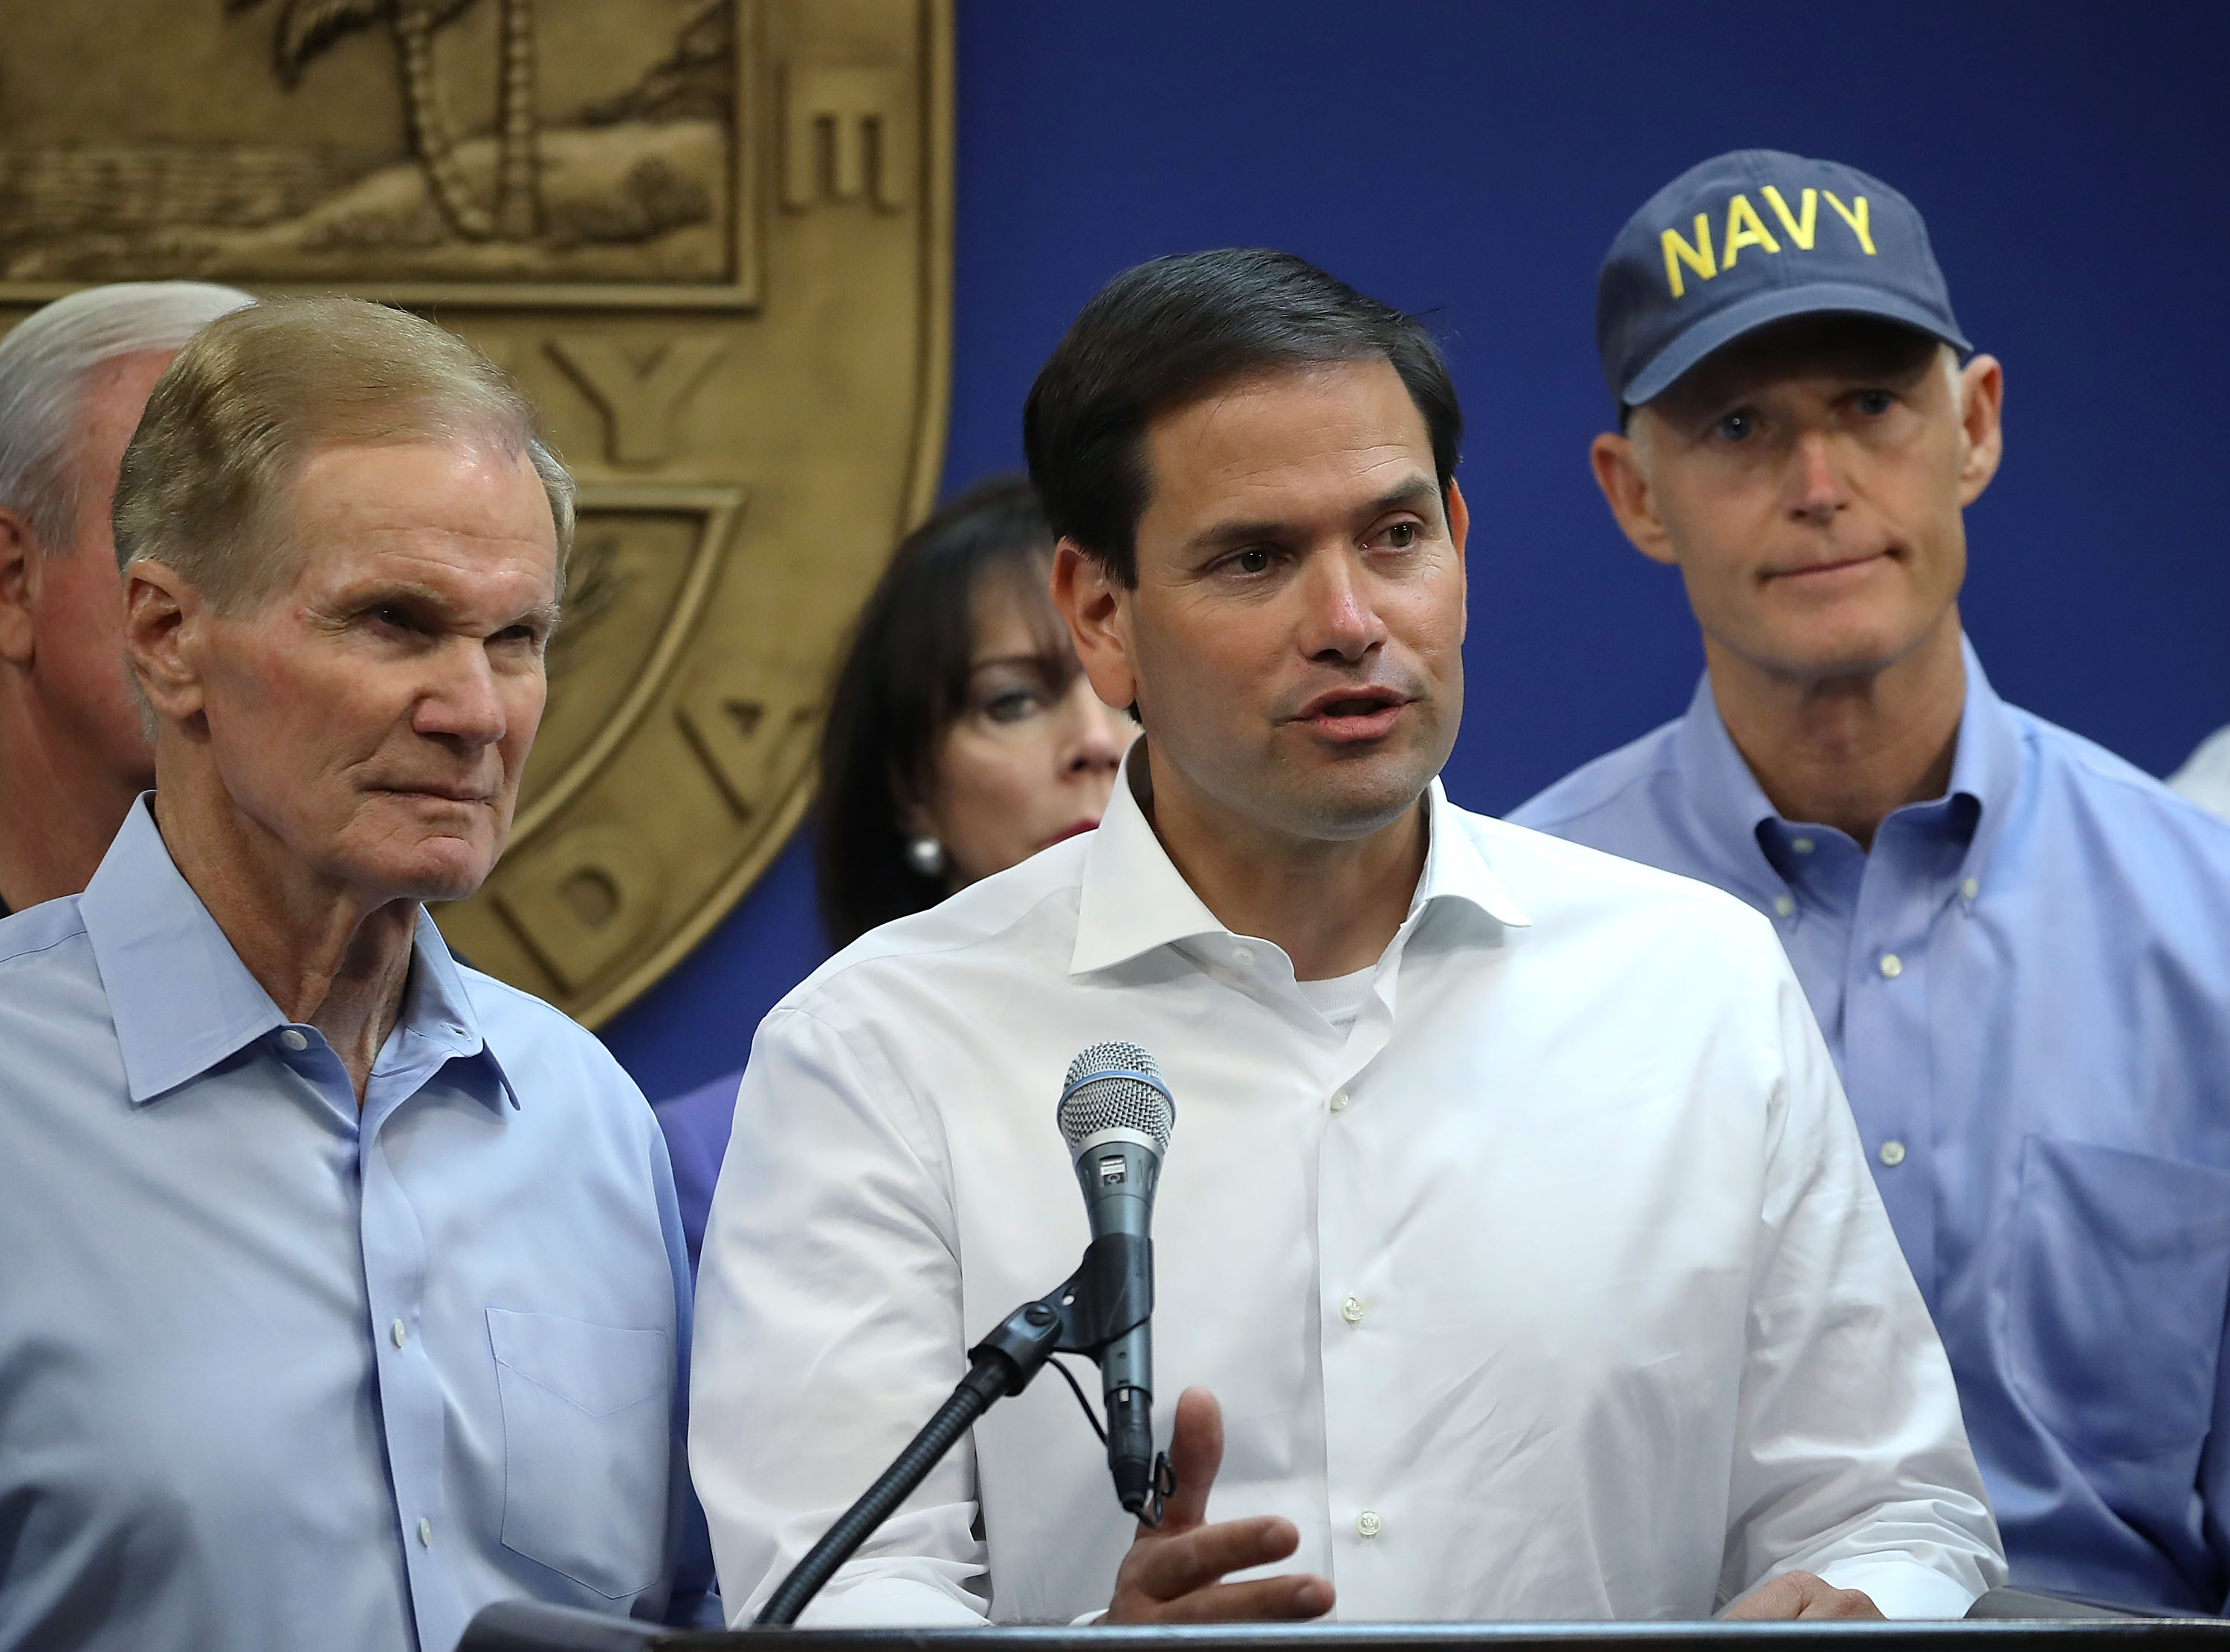 (L-R), Florida Democratic Sen. Bill Nelson, Florida Republican Sen. Marco Rubio and Florida Gov. Rick Scott speak to the media about Hurricane Irma on September 6, 2017 in Doral, Florida. Mark Wilson/Getty Images